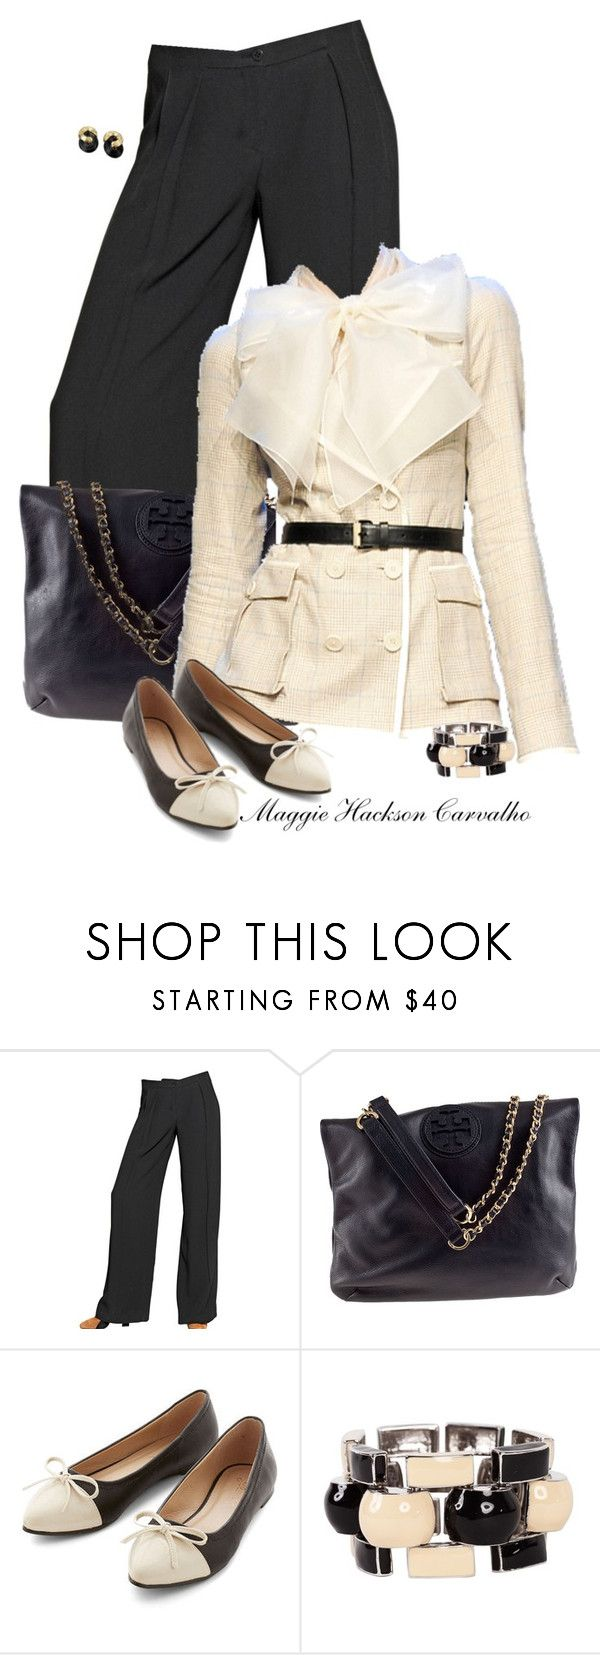 """""""• Work Wear •"""" by maggie-jackson-carvalho on Polyvore featuring Emporio Armani, Tory Burch, Jason Wu and J.W. Anderson"""